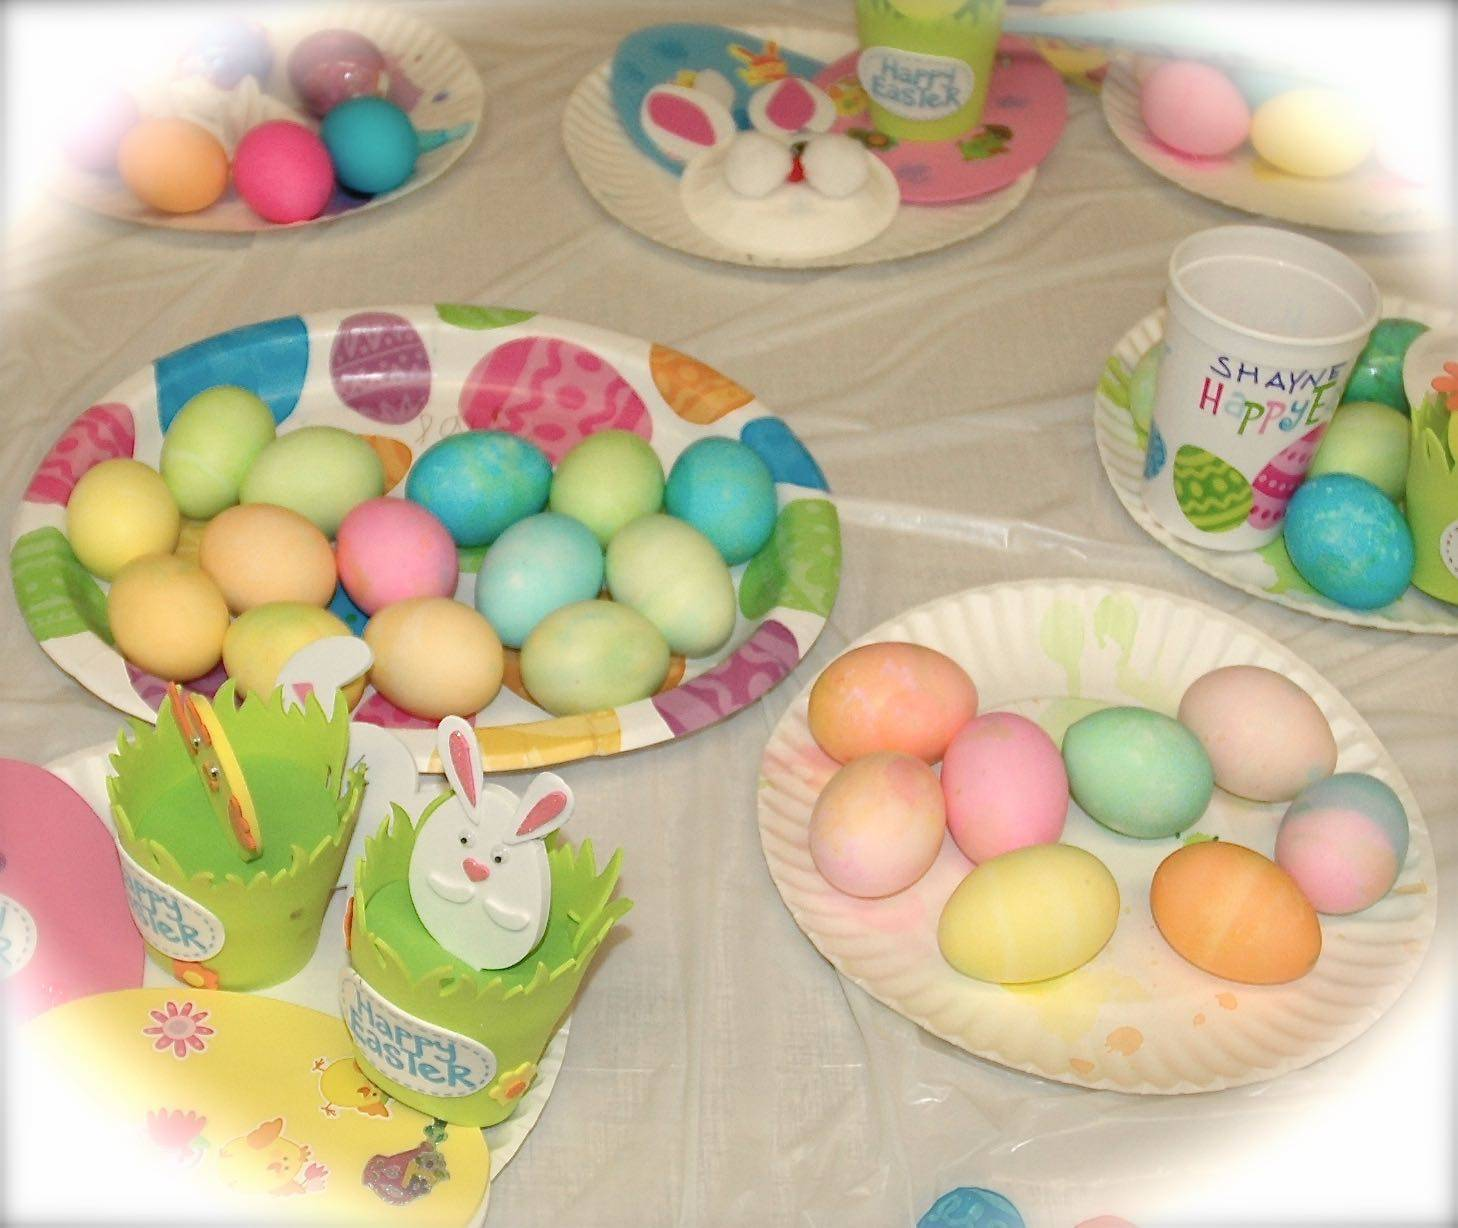 34a15ec6082ba529fa0c_Easter_Crafts.jpg